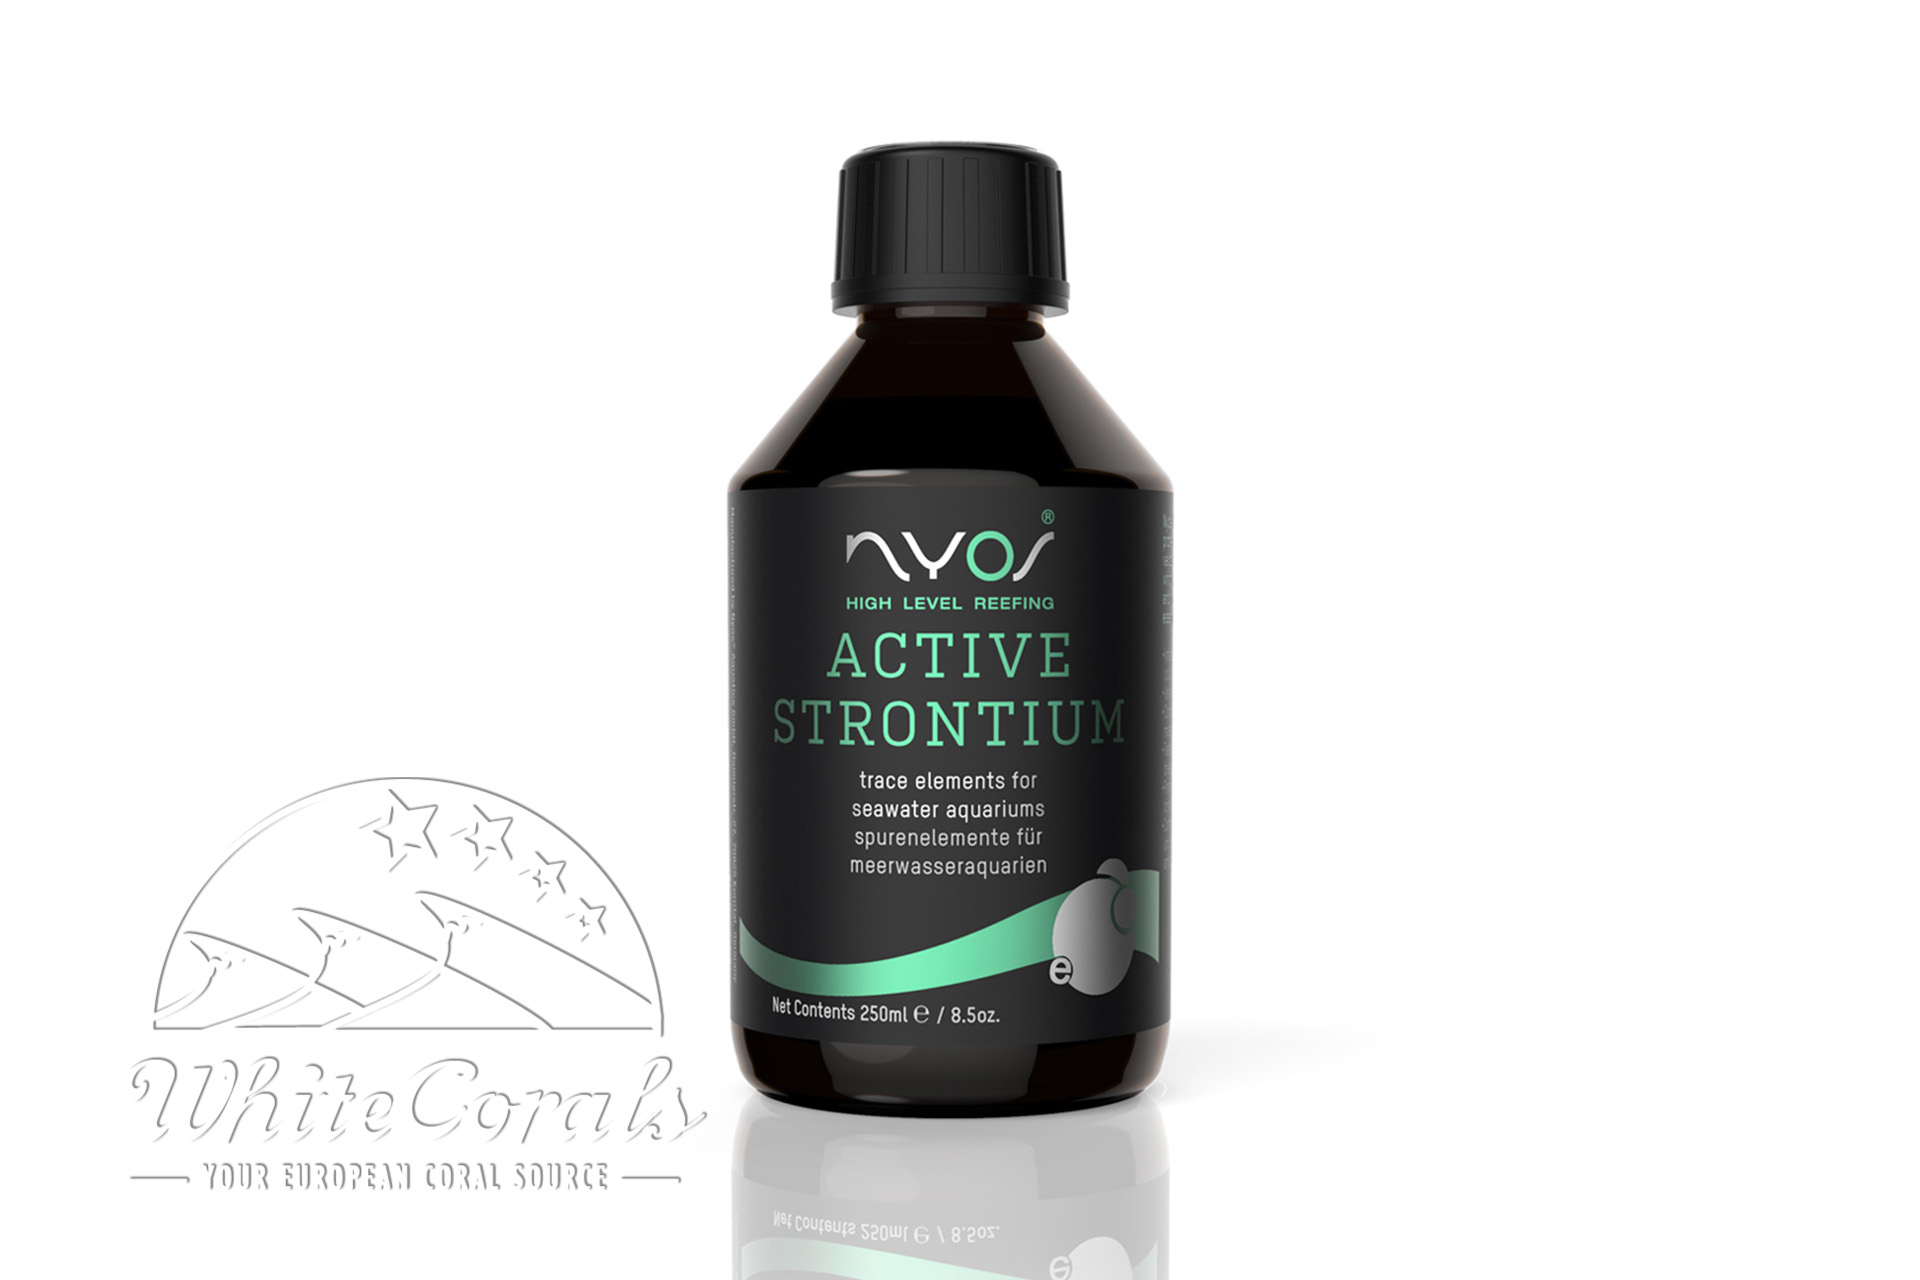 Nyos Active Strontium 250 ml trace elements